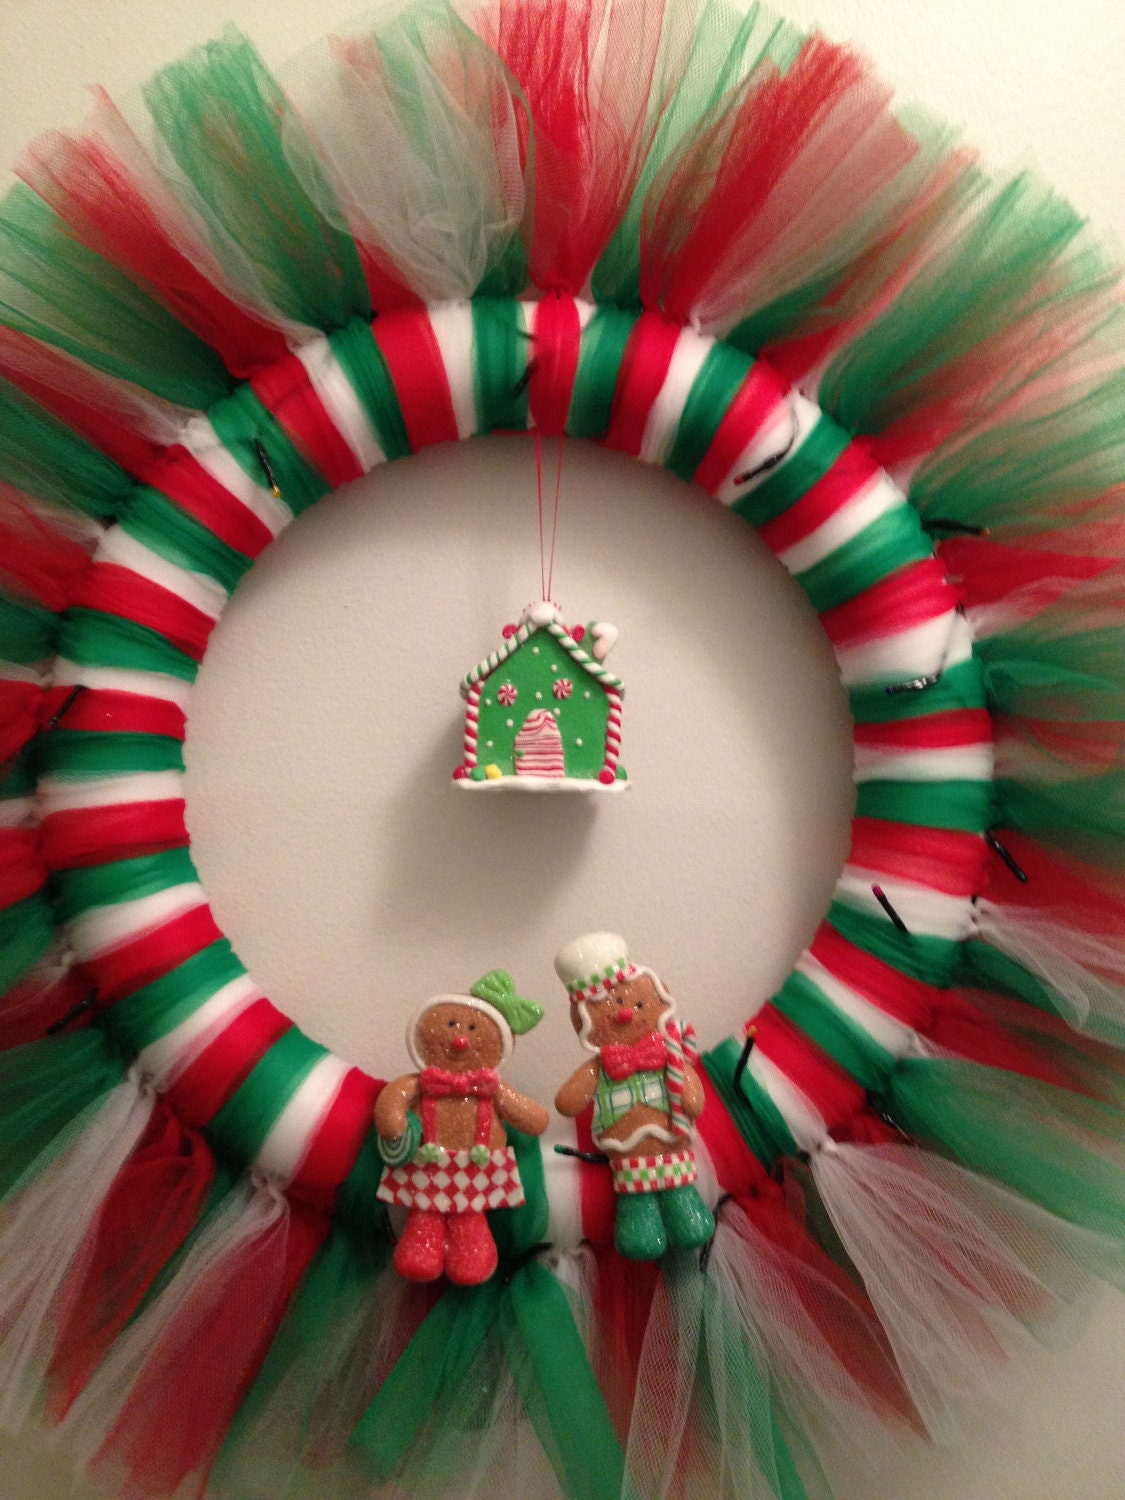 Christmas Gingerbread Tulle Wreath with Cottage and Lights